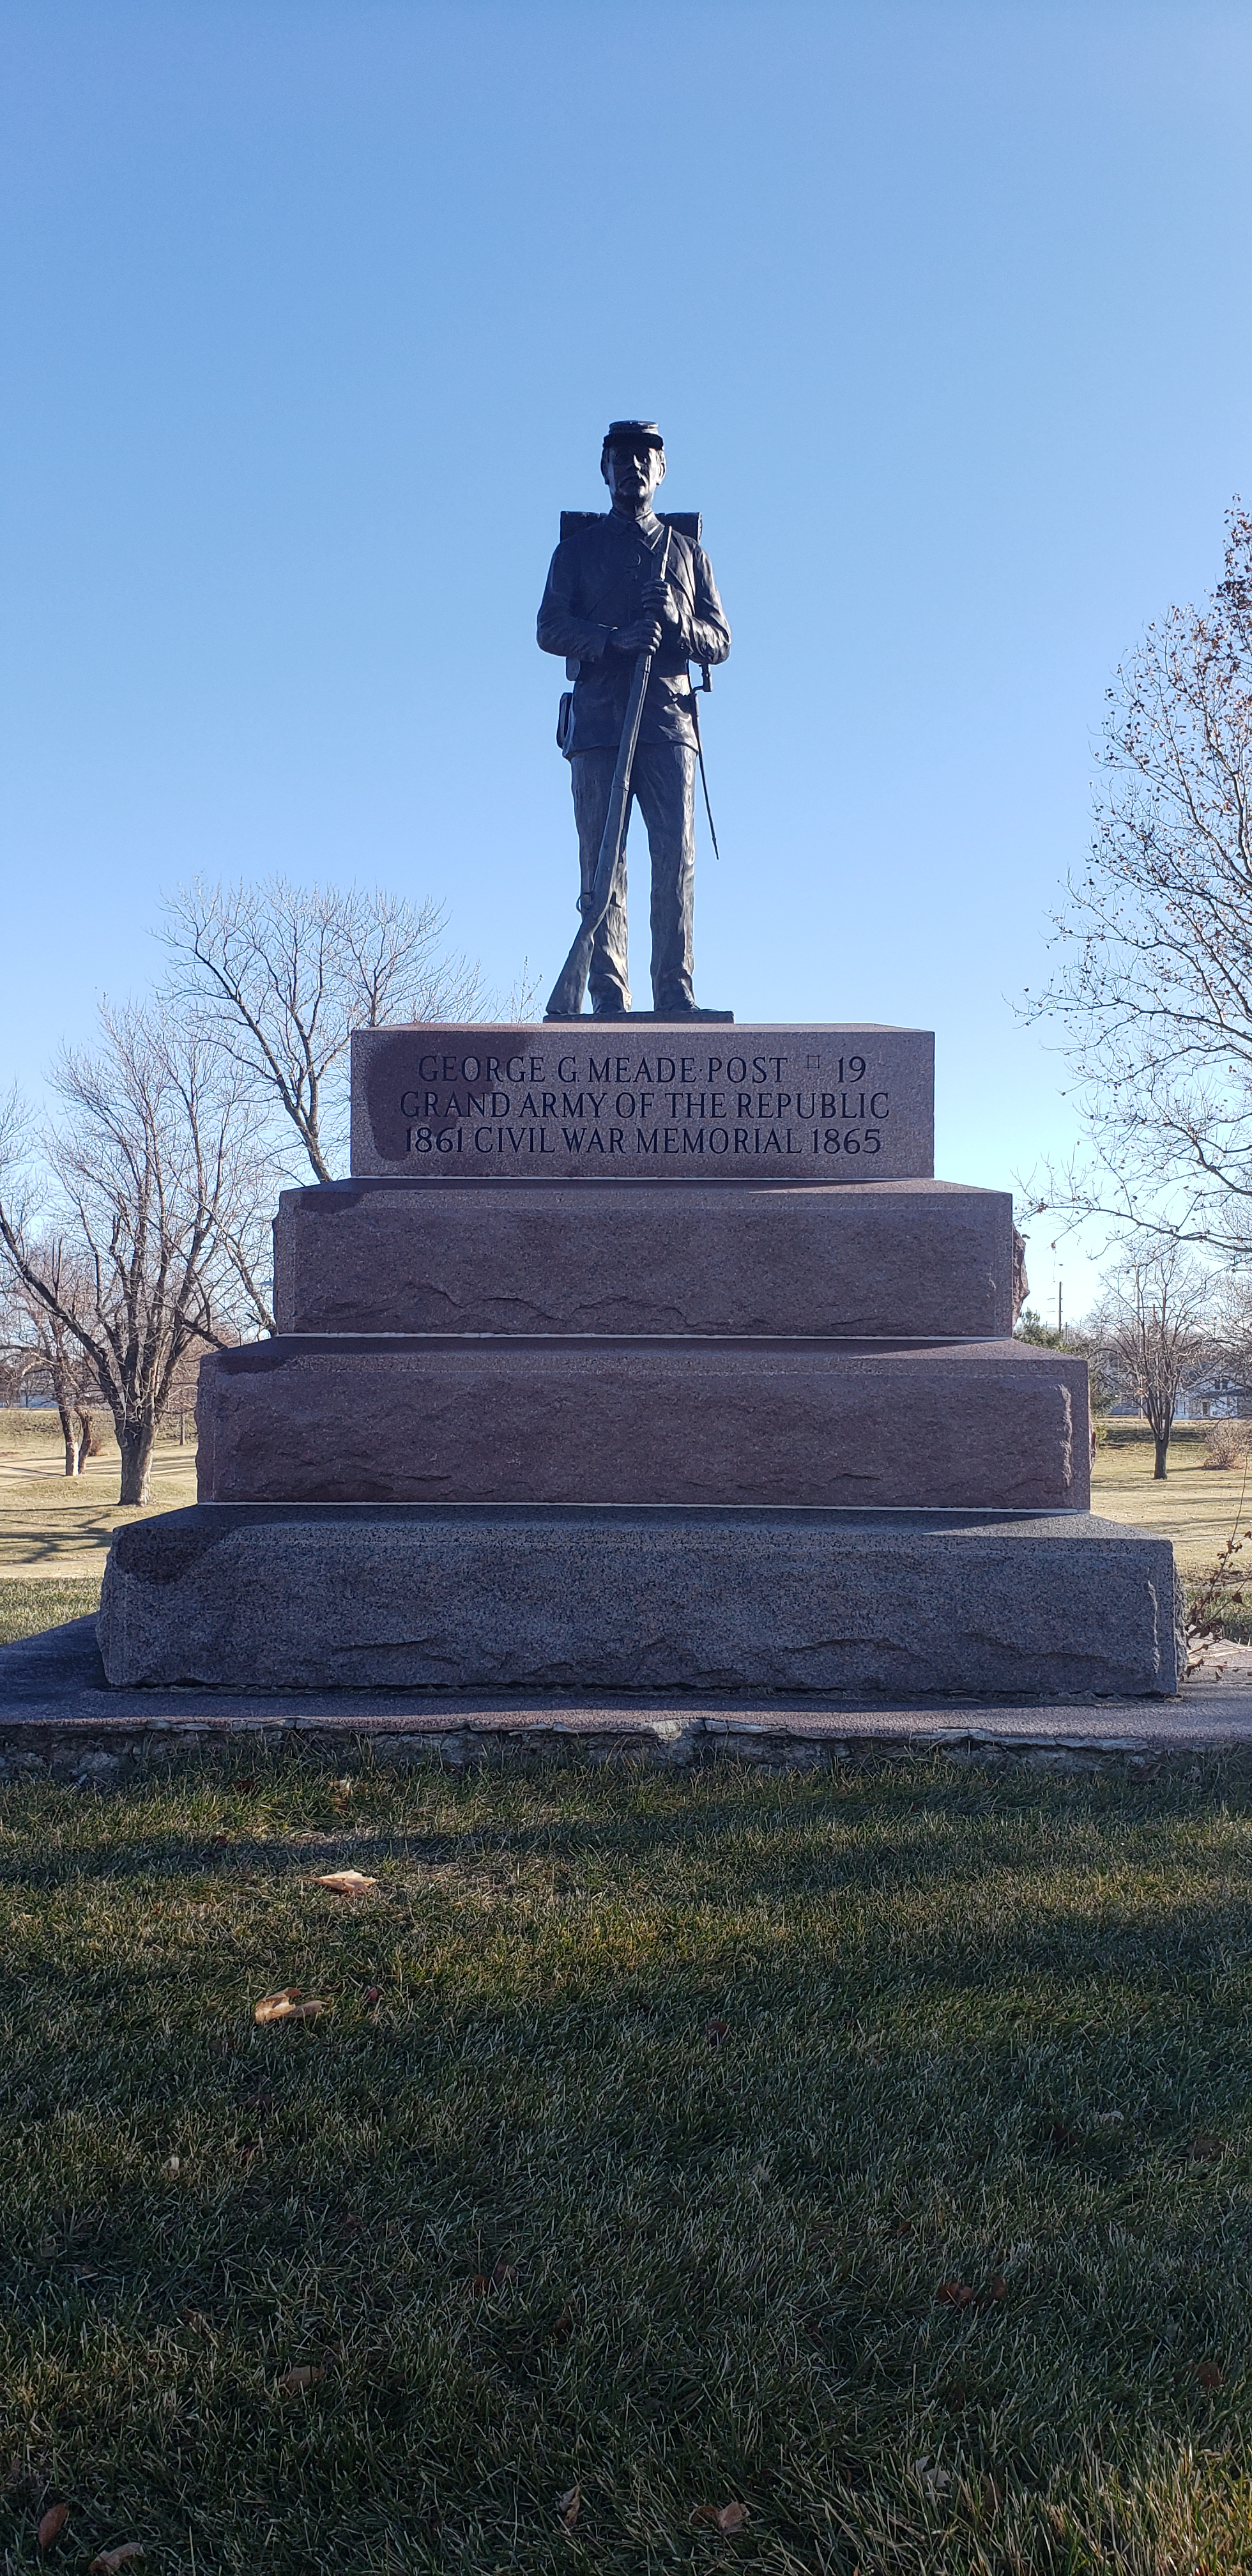 The base and final statue of the site